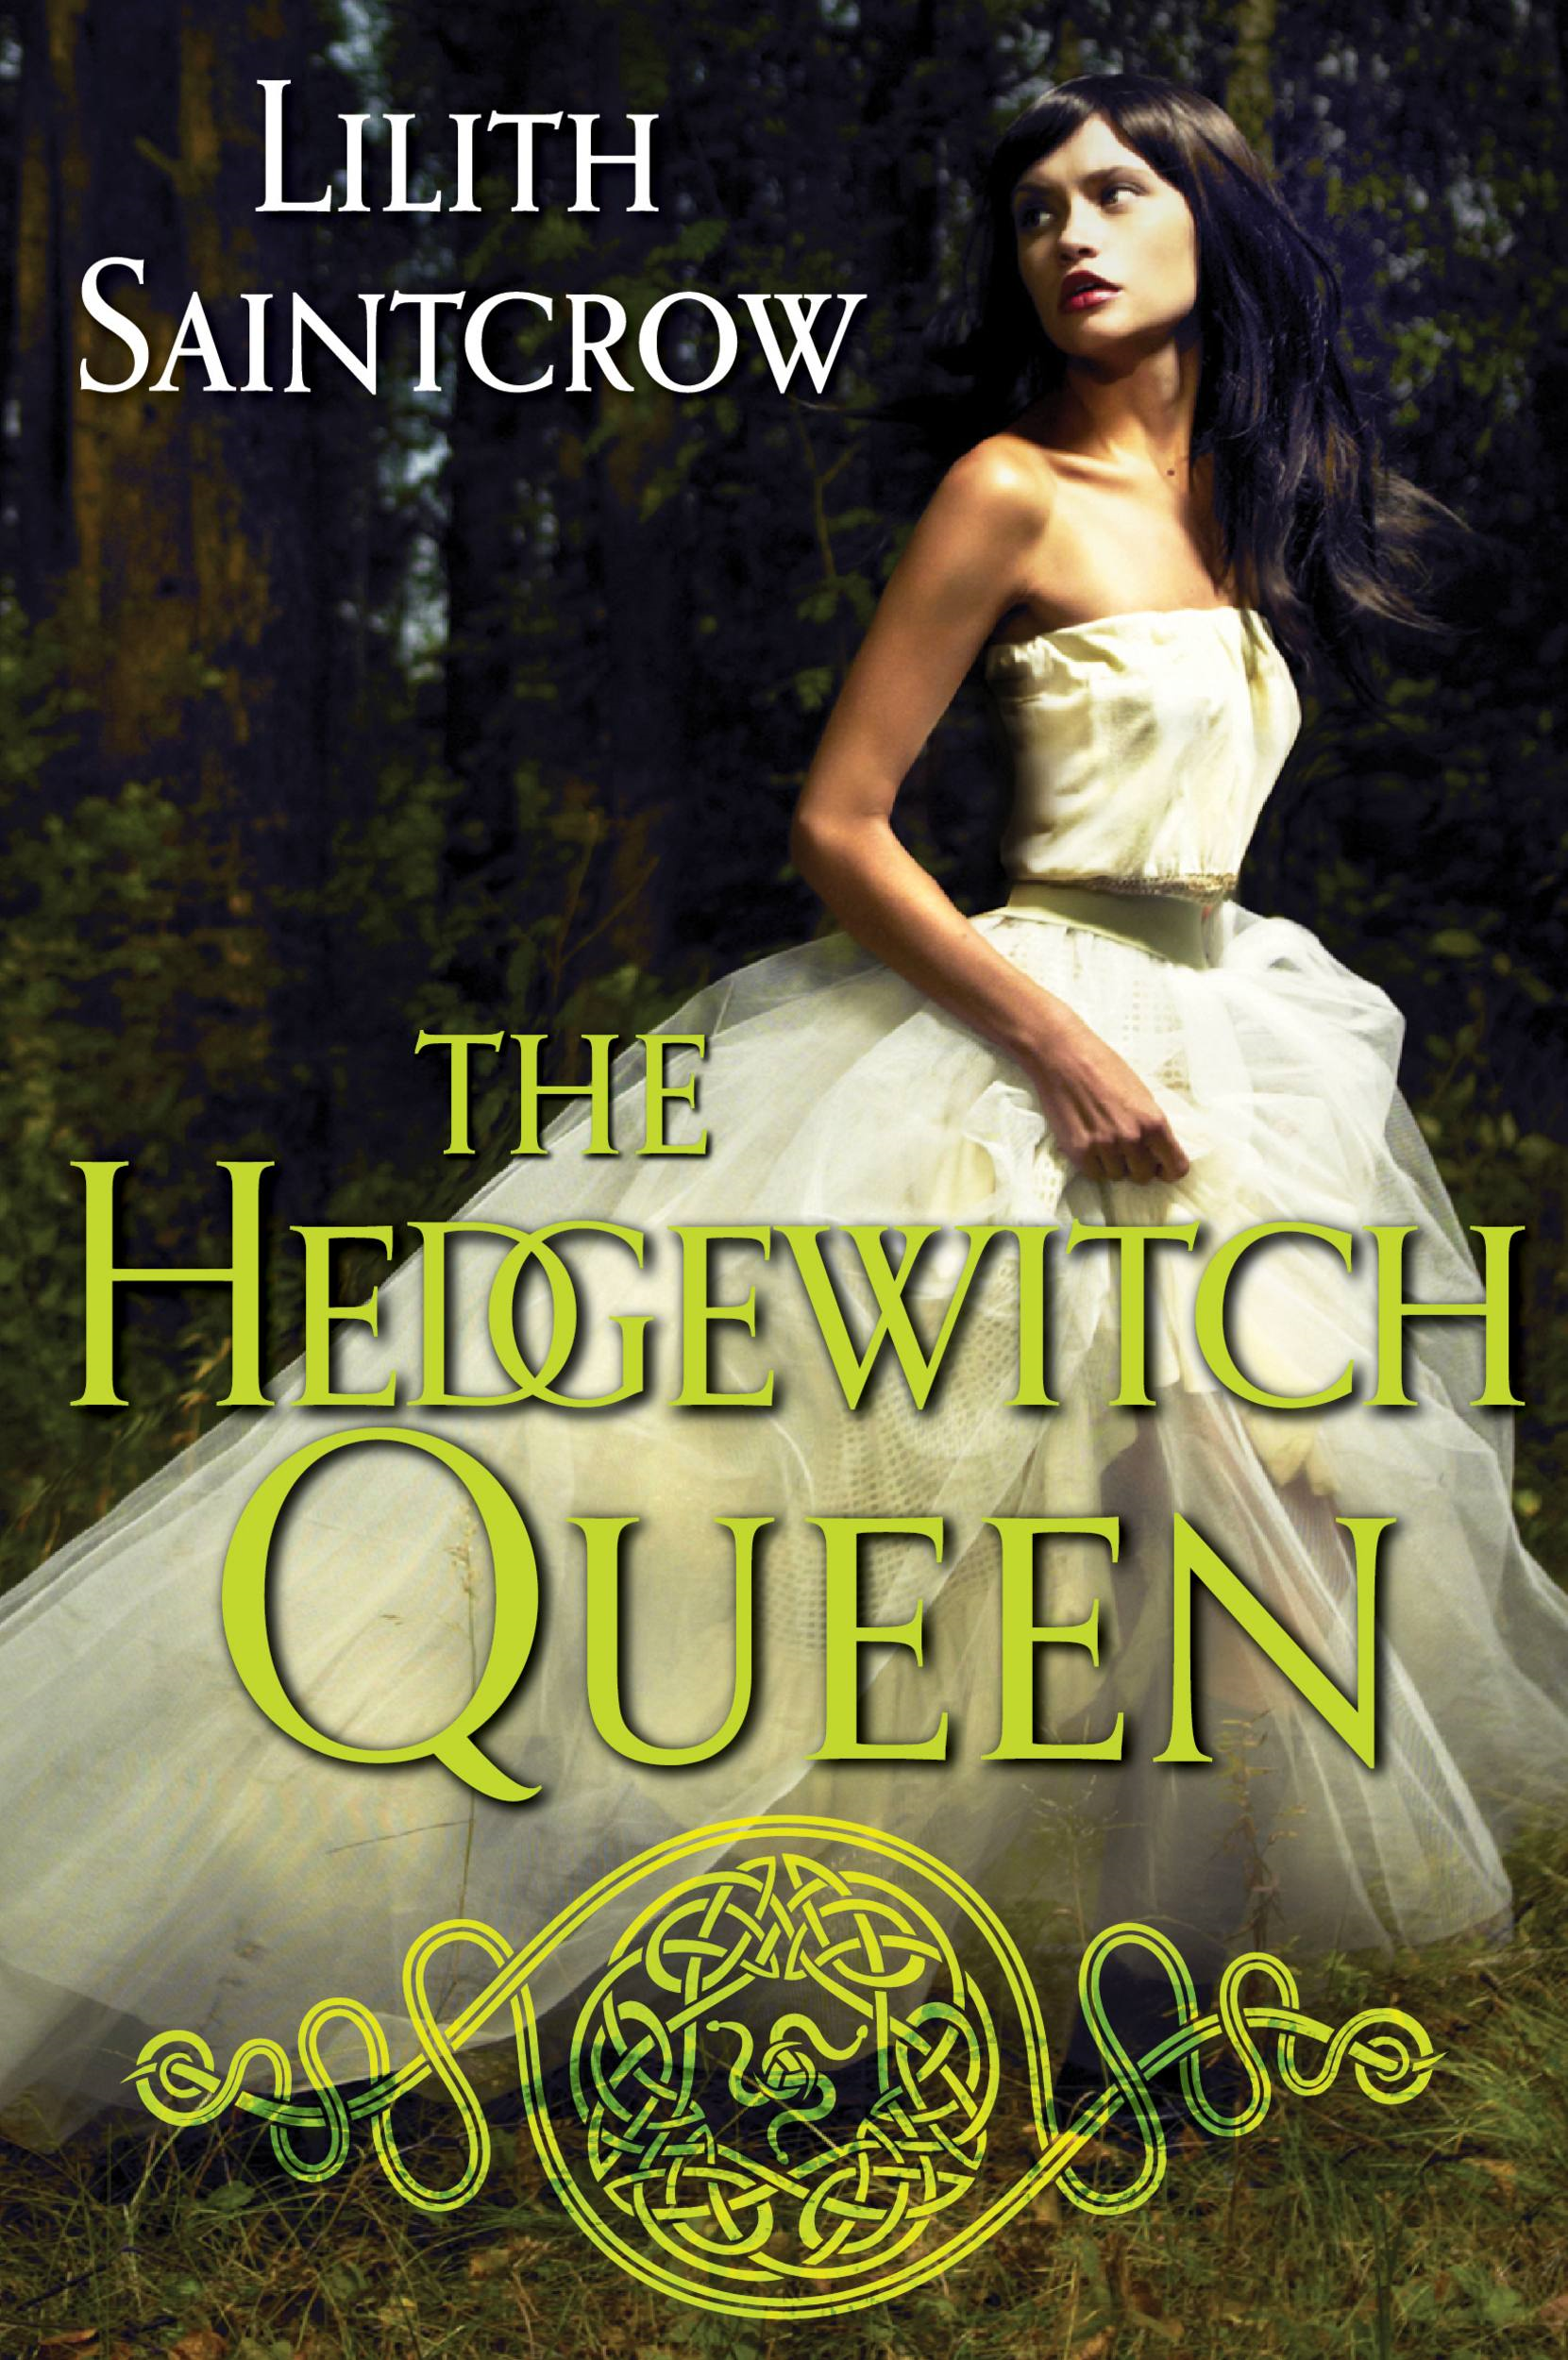 The Hedgewitch Queen By: Lilith Saintcrow